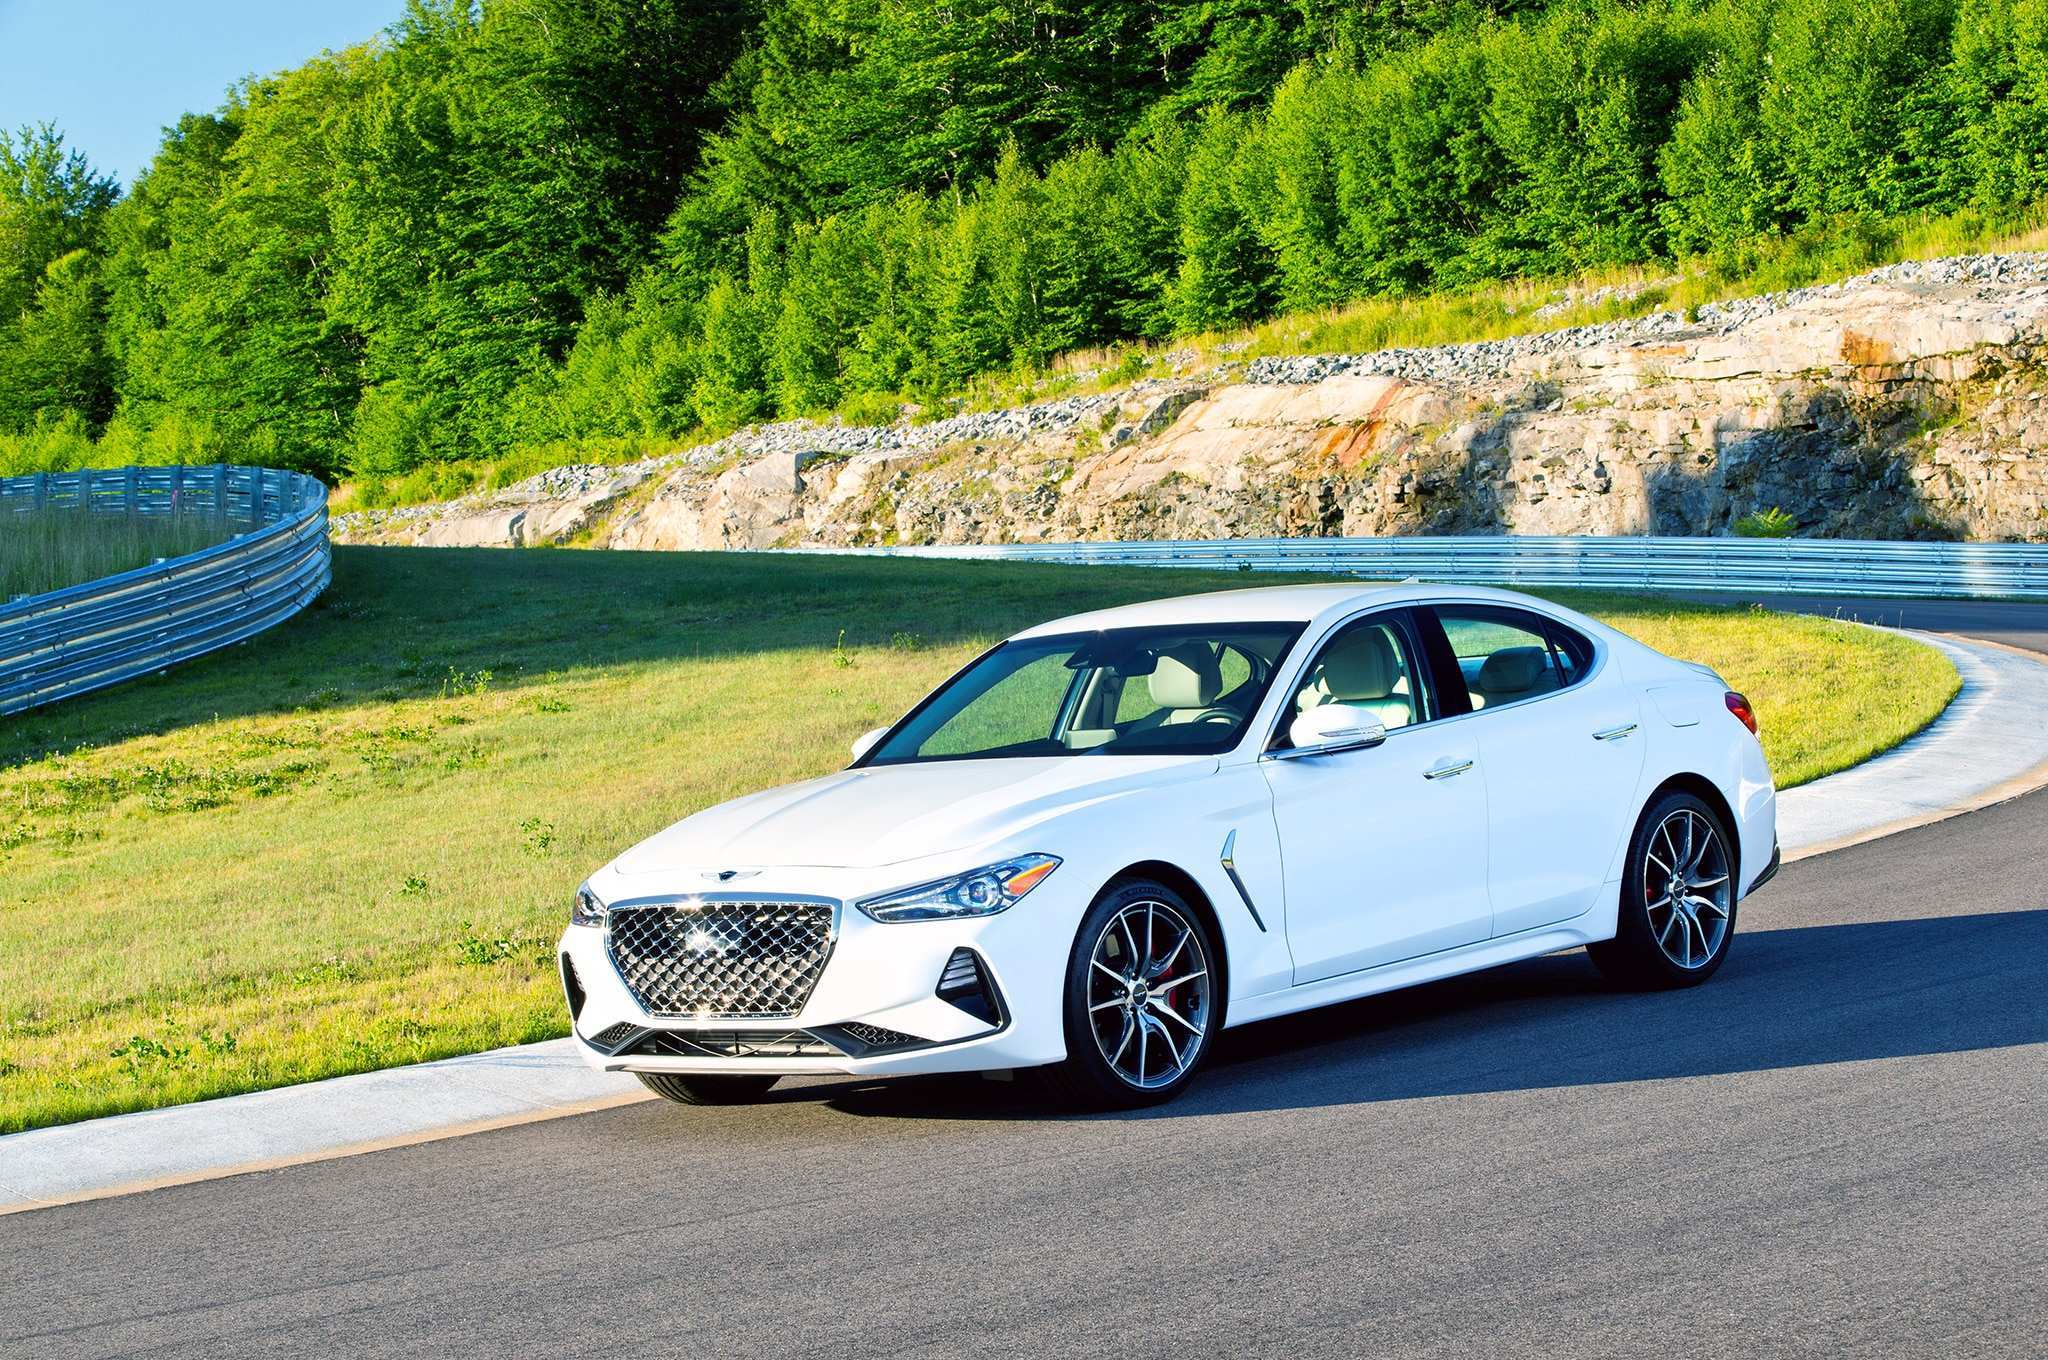 72 Best Review 2019 Genesis G70 Review Pictures with 2019 Genesis G70 Review